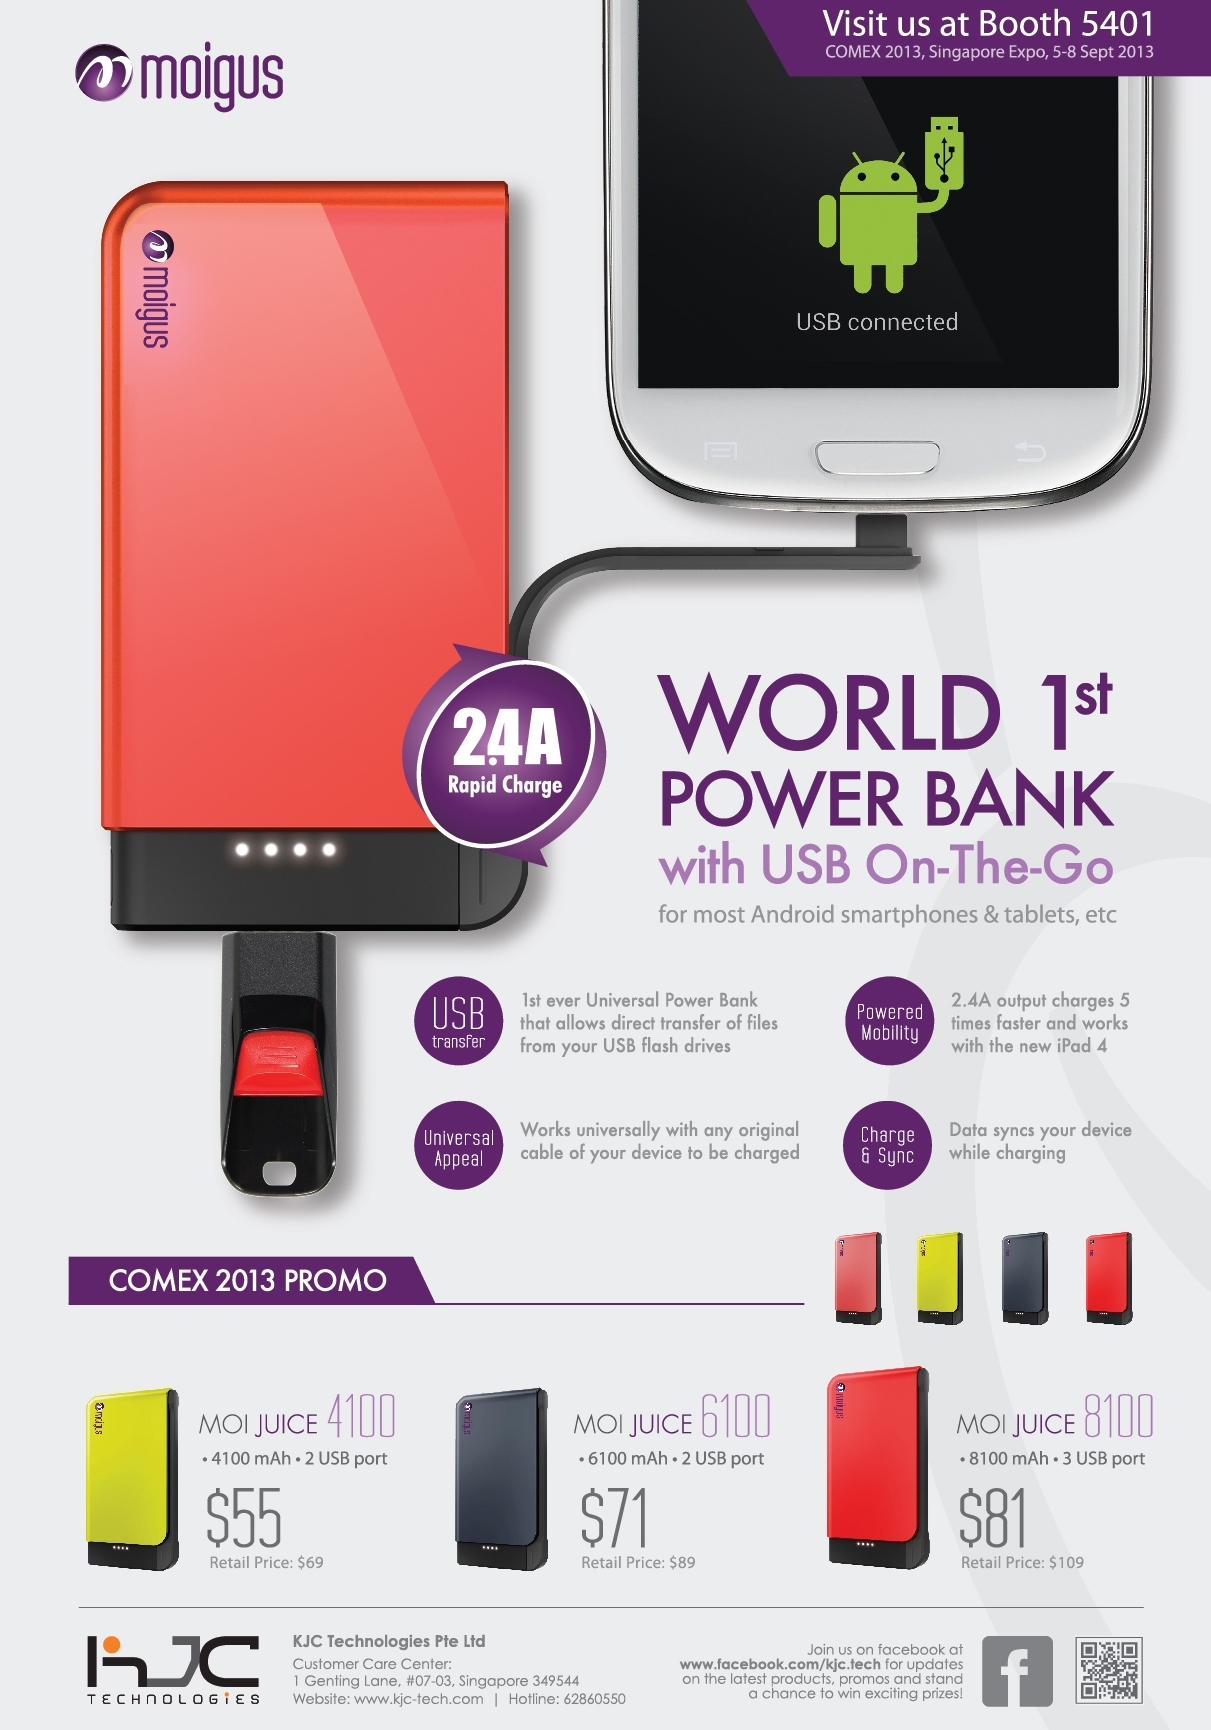 COMEX 2013 price list image brochure of KJC Moigus External Charger Power Bank Moi Juice 4100, 6100, 8100